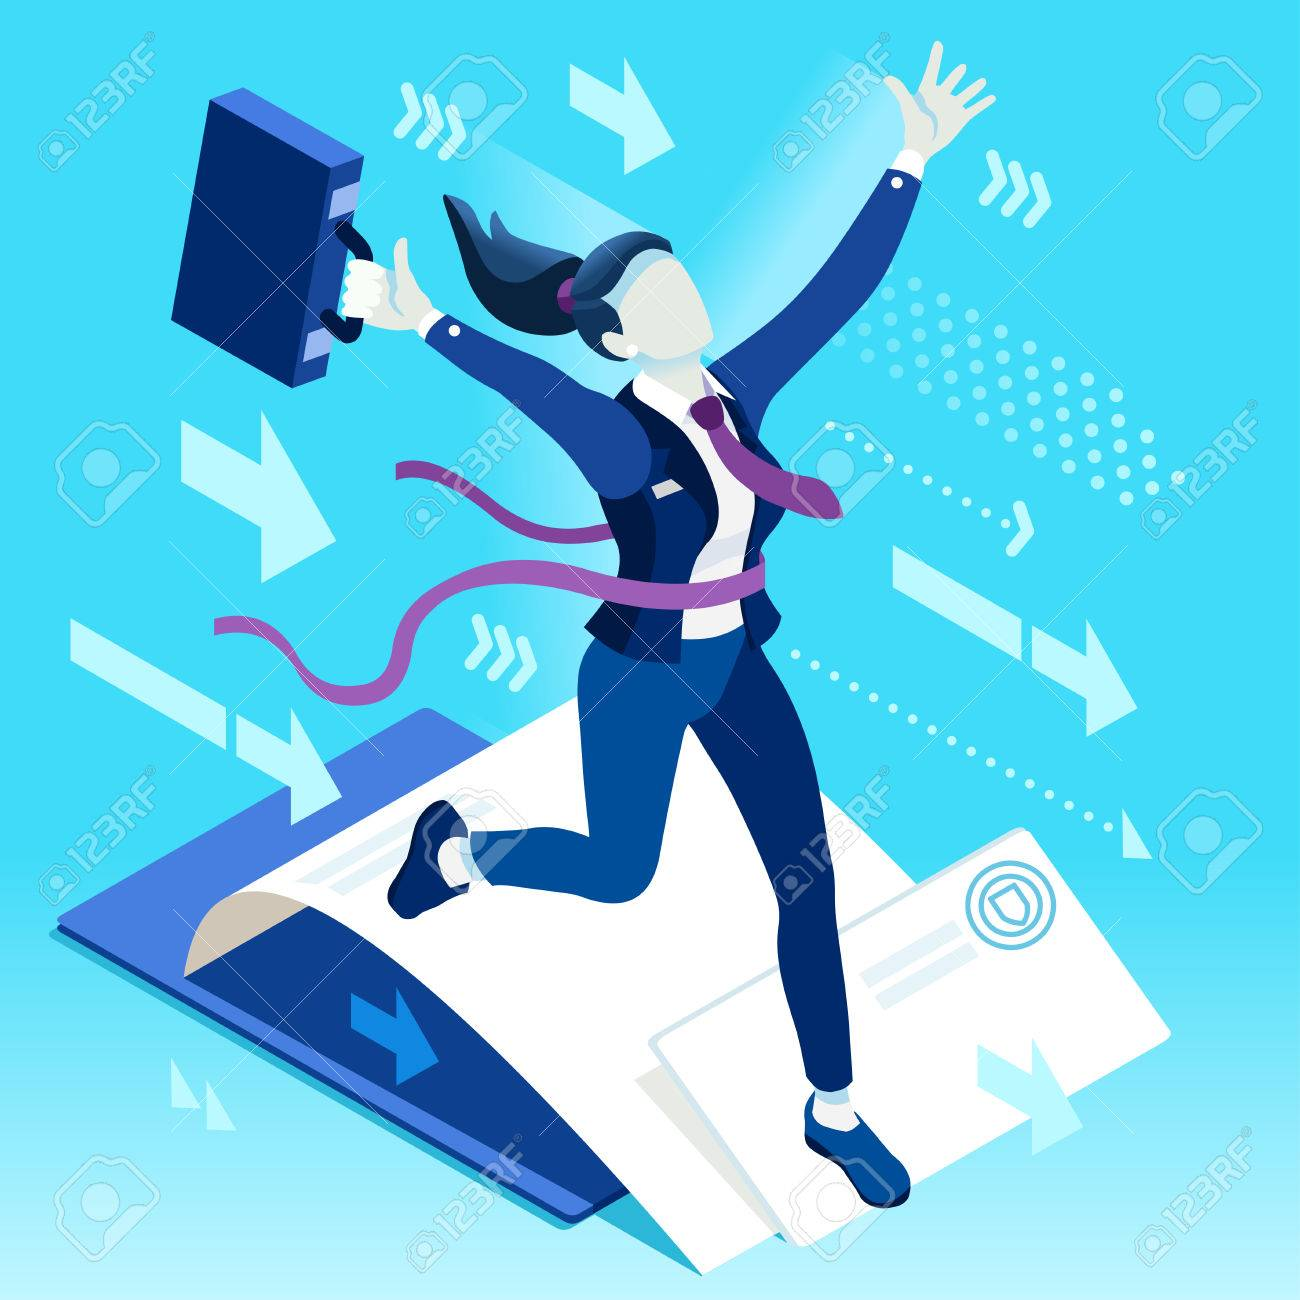 Business concept infographic vector design. Businessperson 3D character flat ambitious woman. Career ambition changing role. Winning Startup group